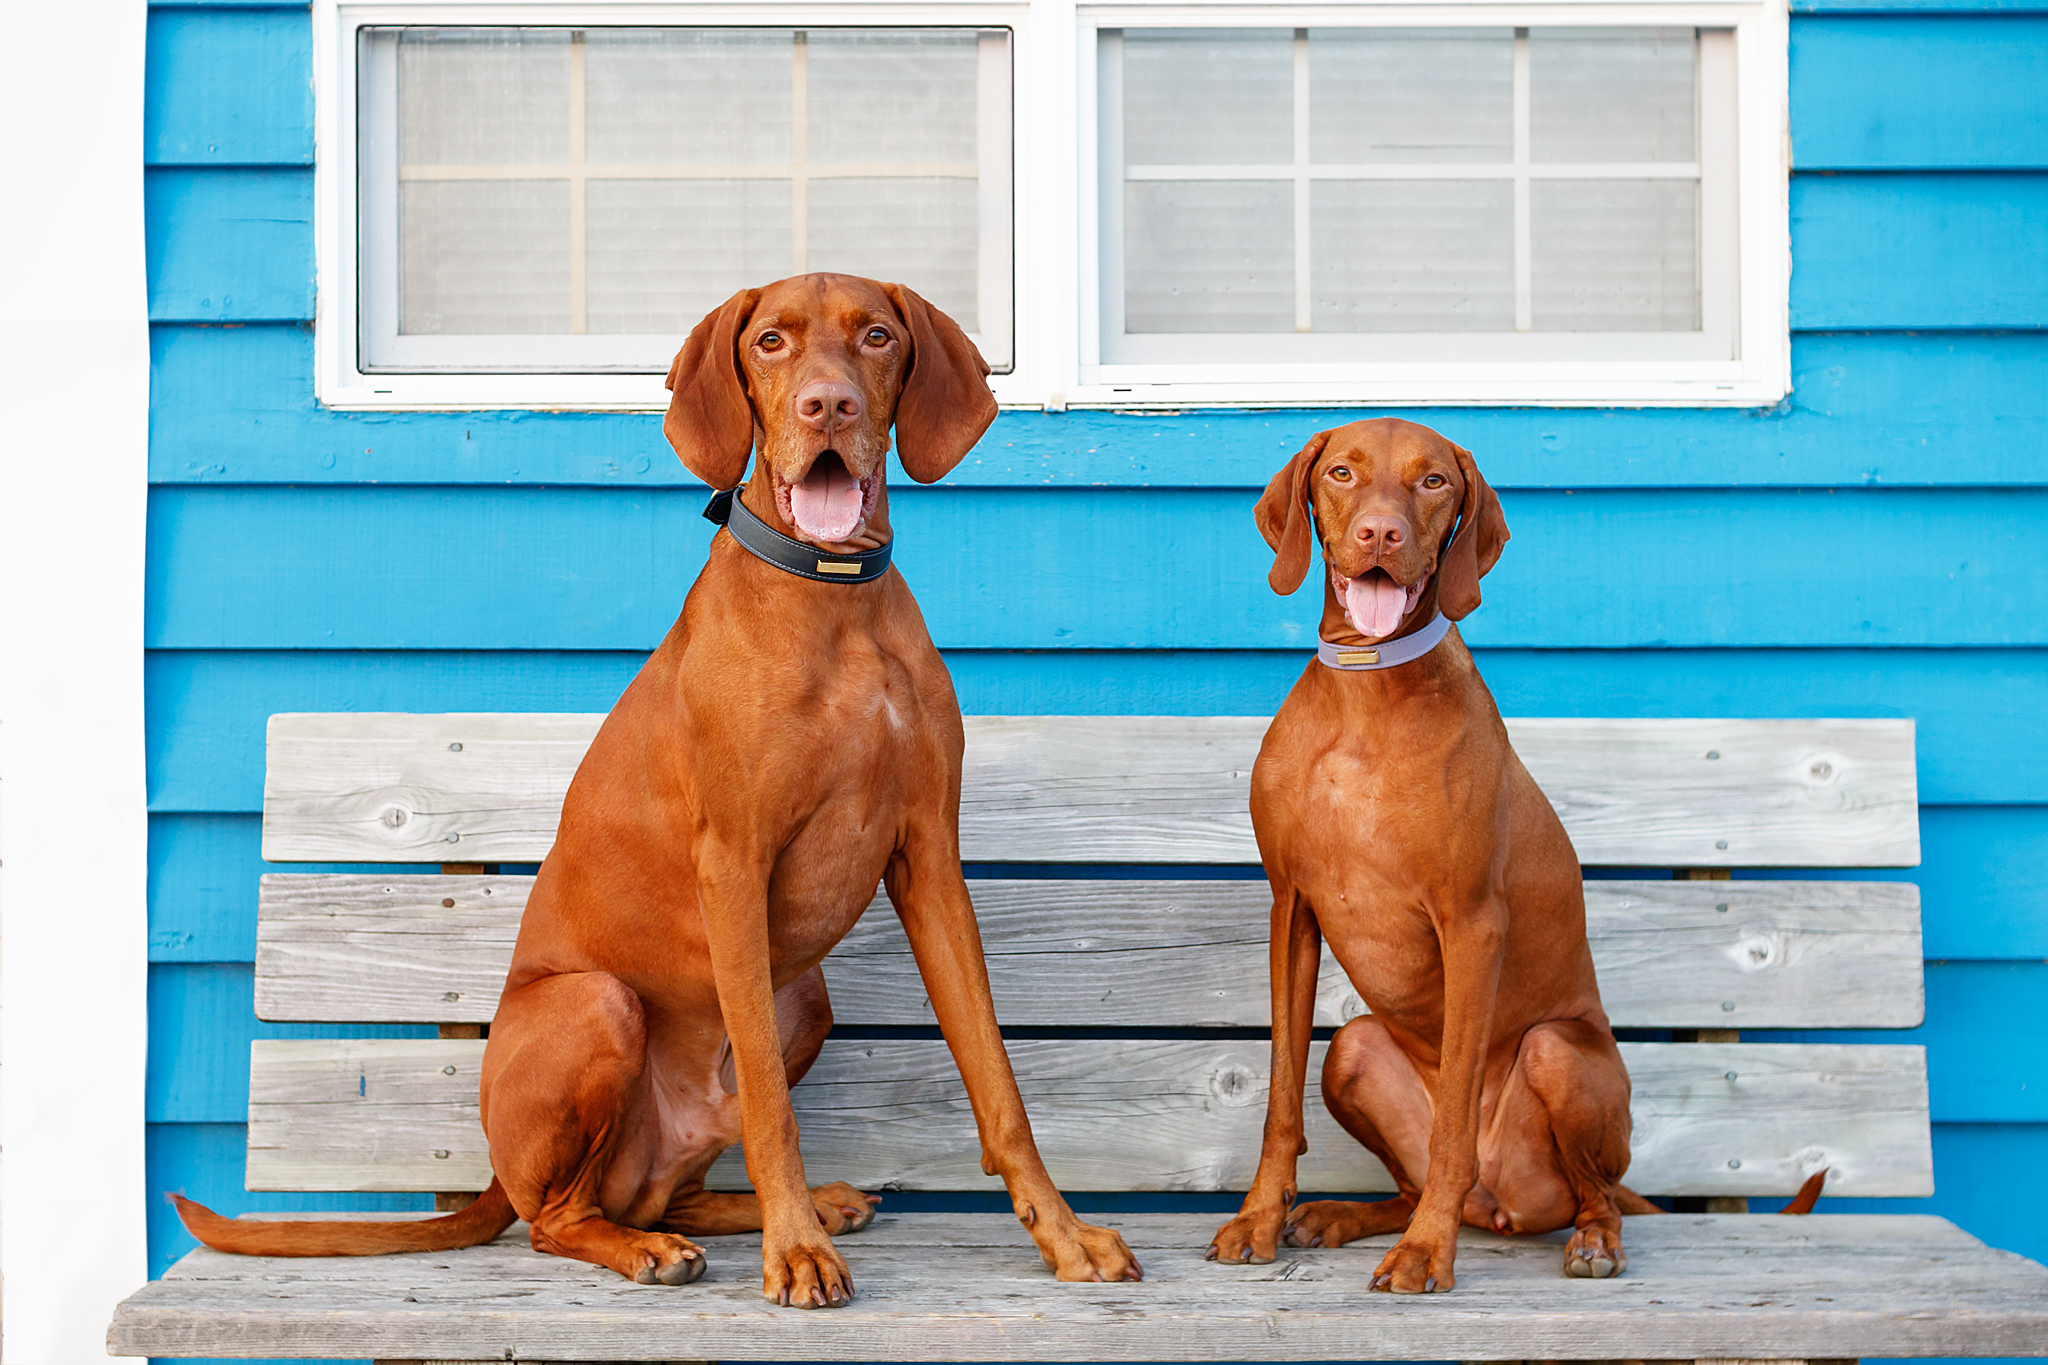 vizsla_photographer_halifax.jpg